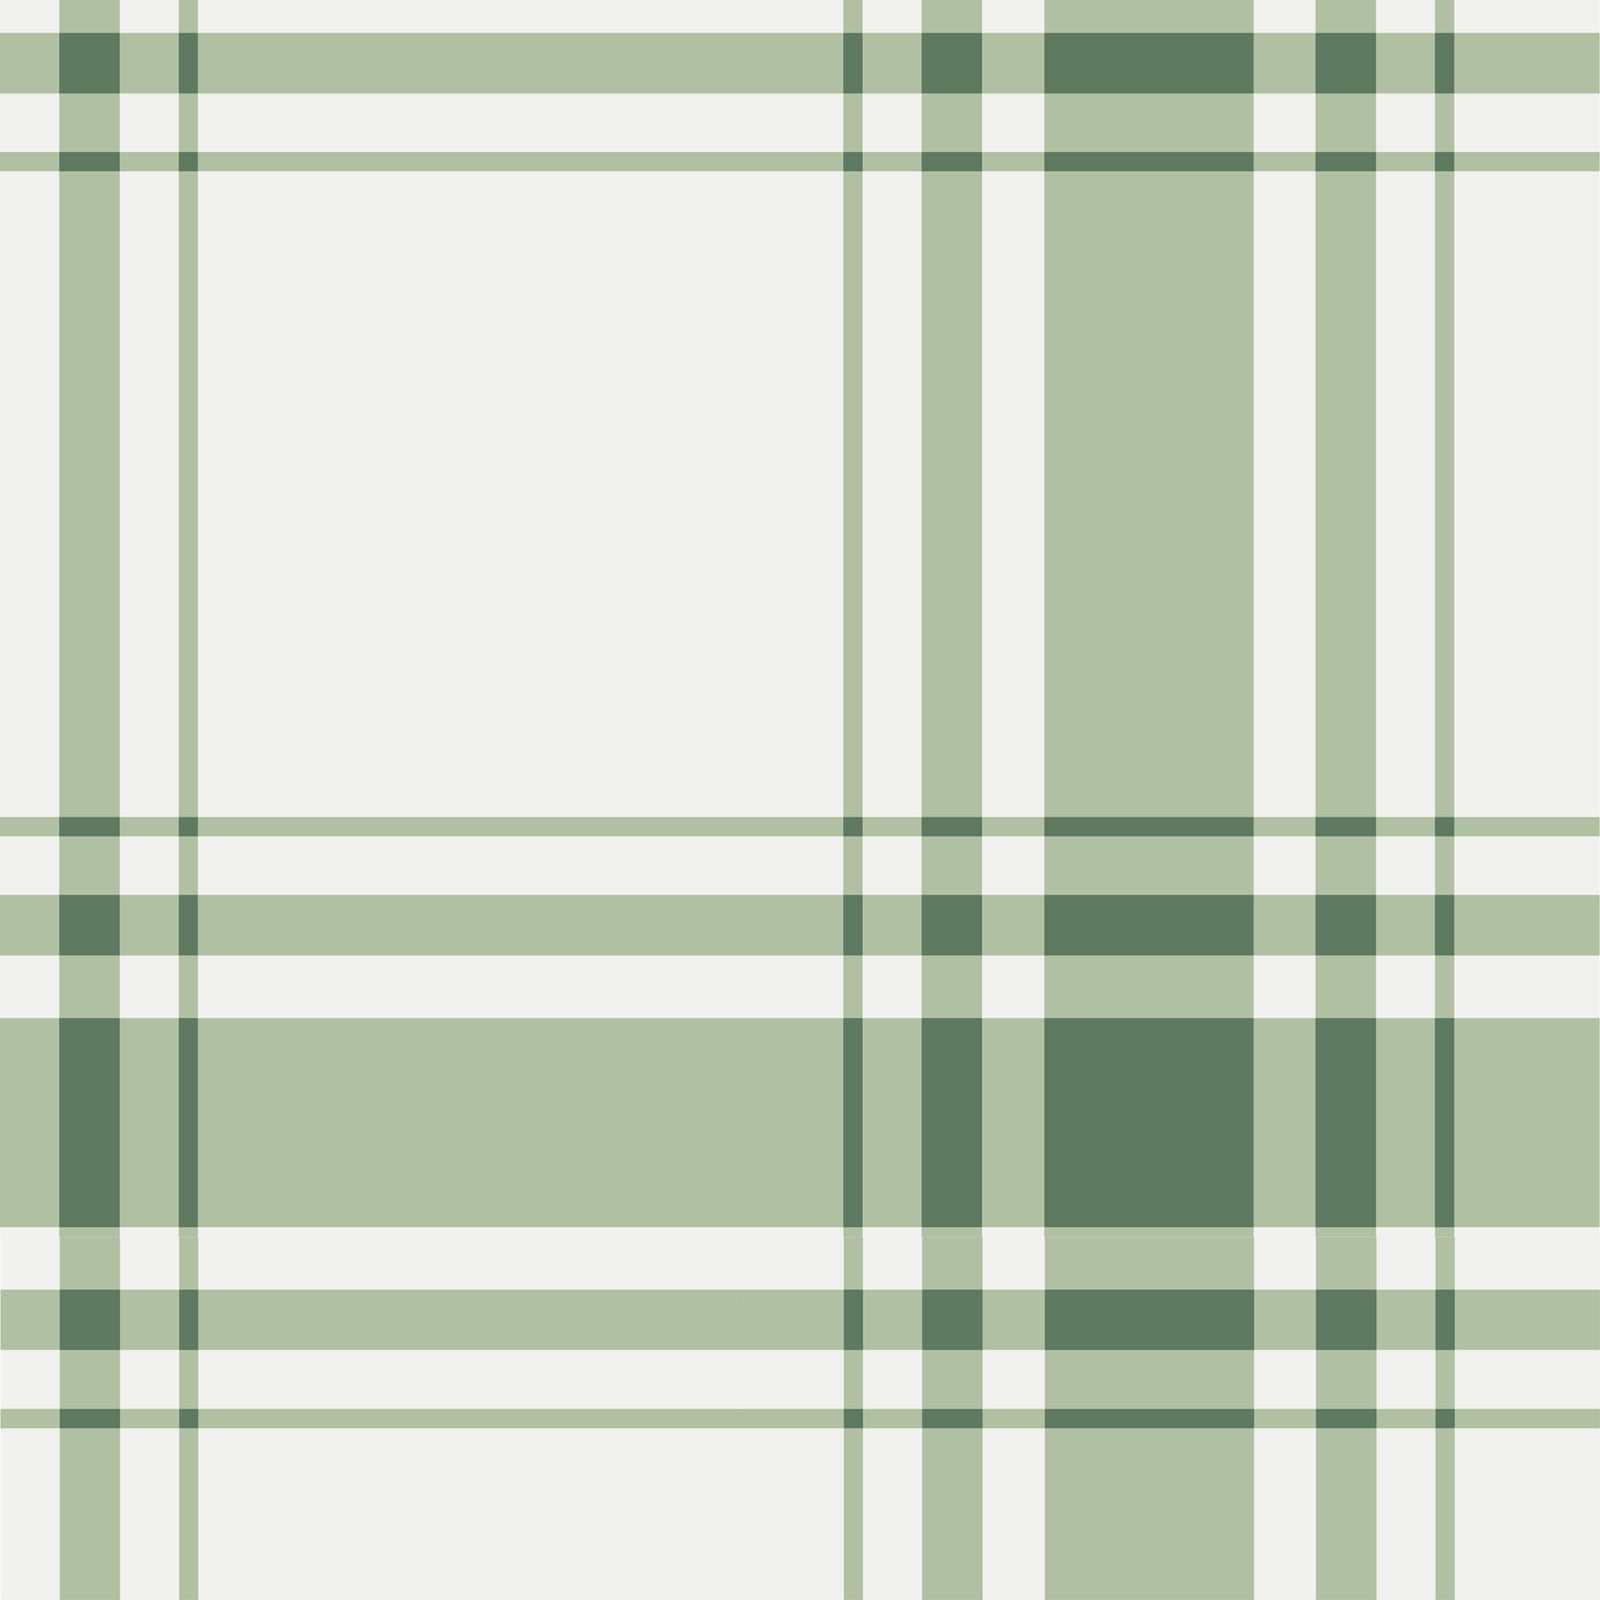 Oxford Plaid Wallpaper in Sage no. 1